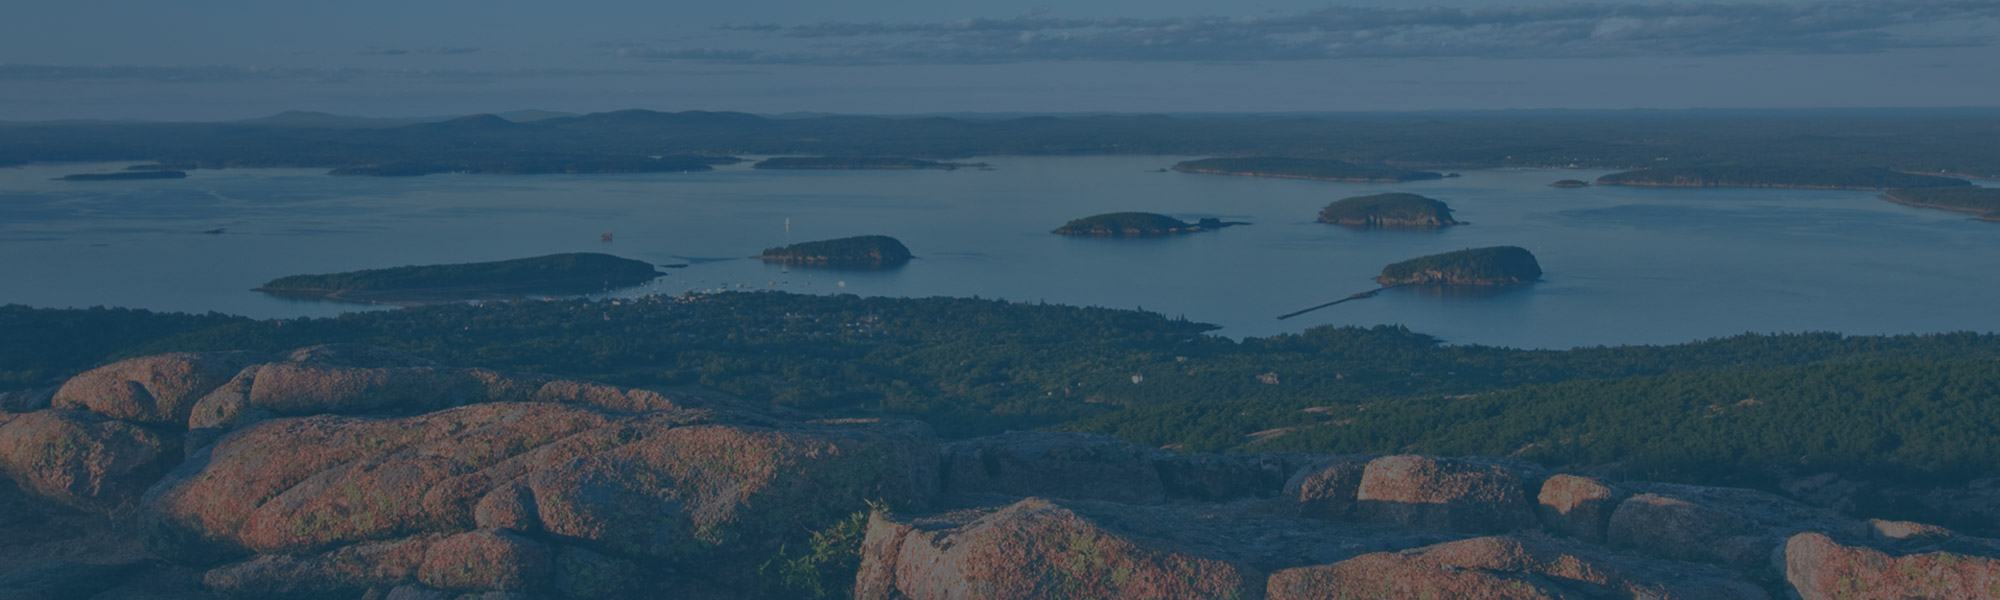 Downeast acadia live and work in maine for Best mountain towns to live and work